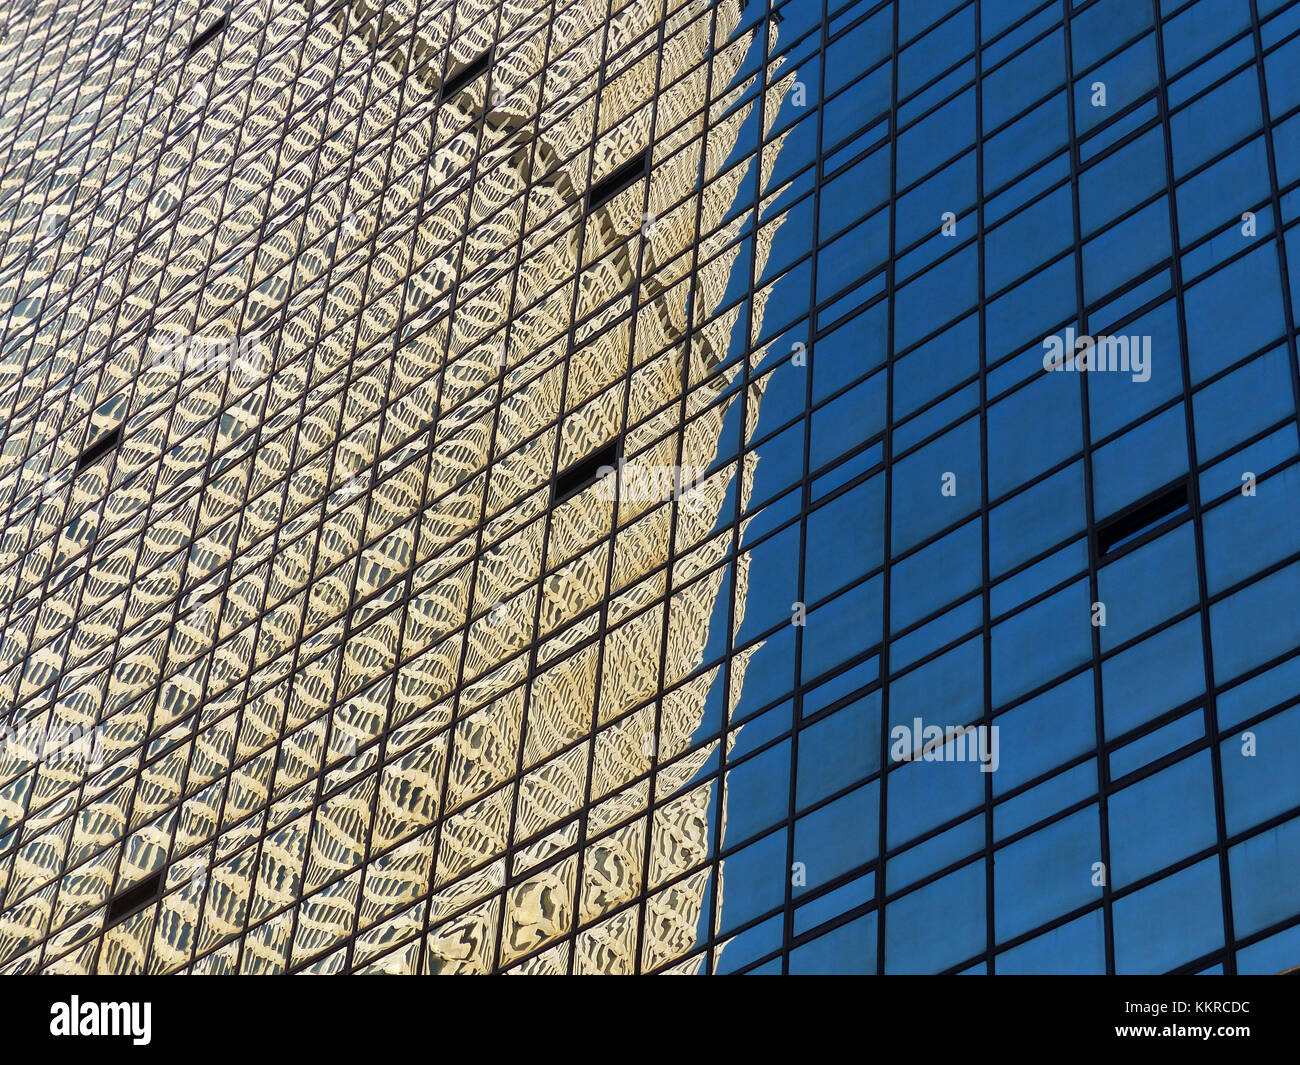 Met Life Building, formerly PanAm Building established in 1962, designed by Architect Emery Roth & Sons, reflecting - Stock Image